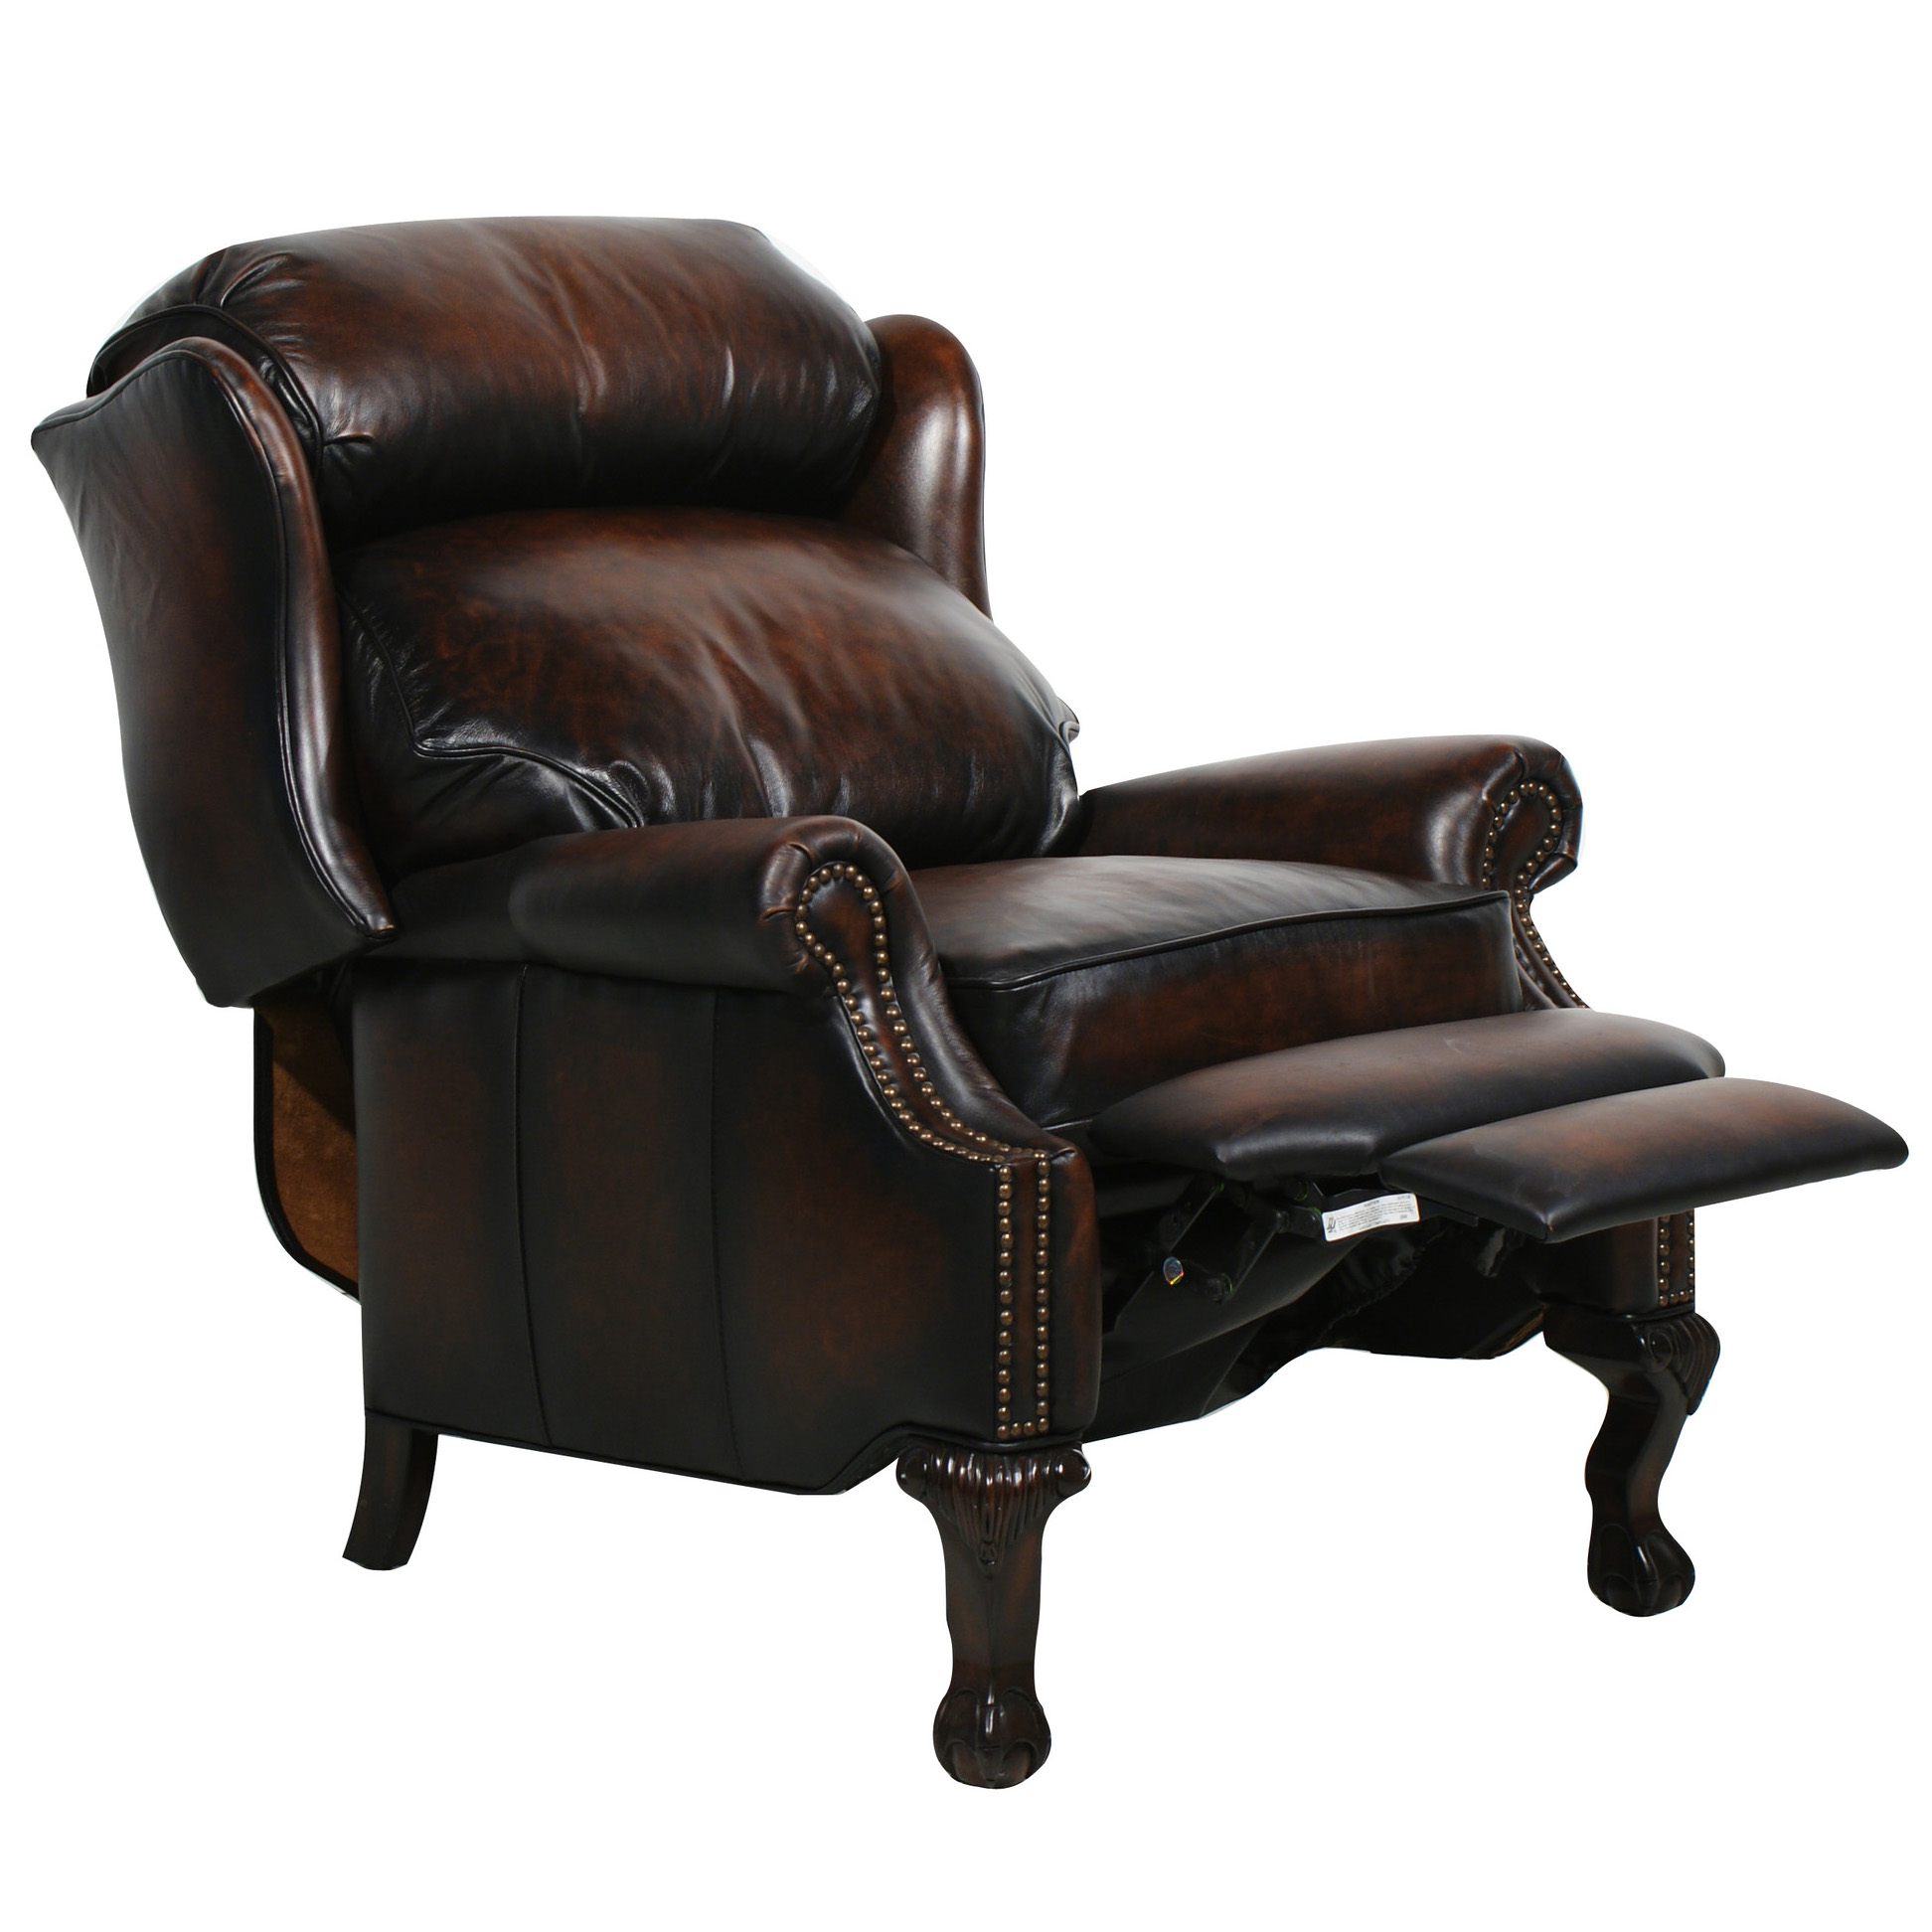 Barcalounger Danbury II Recliner Chair Leather Recliner Chair